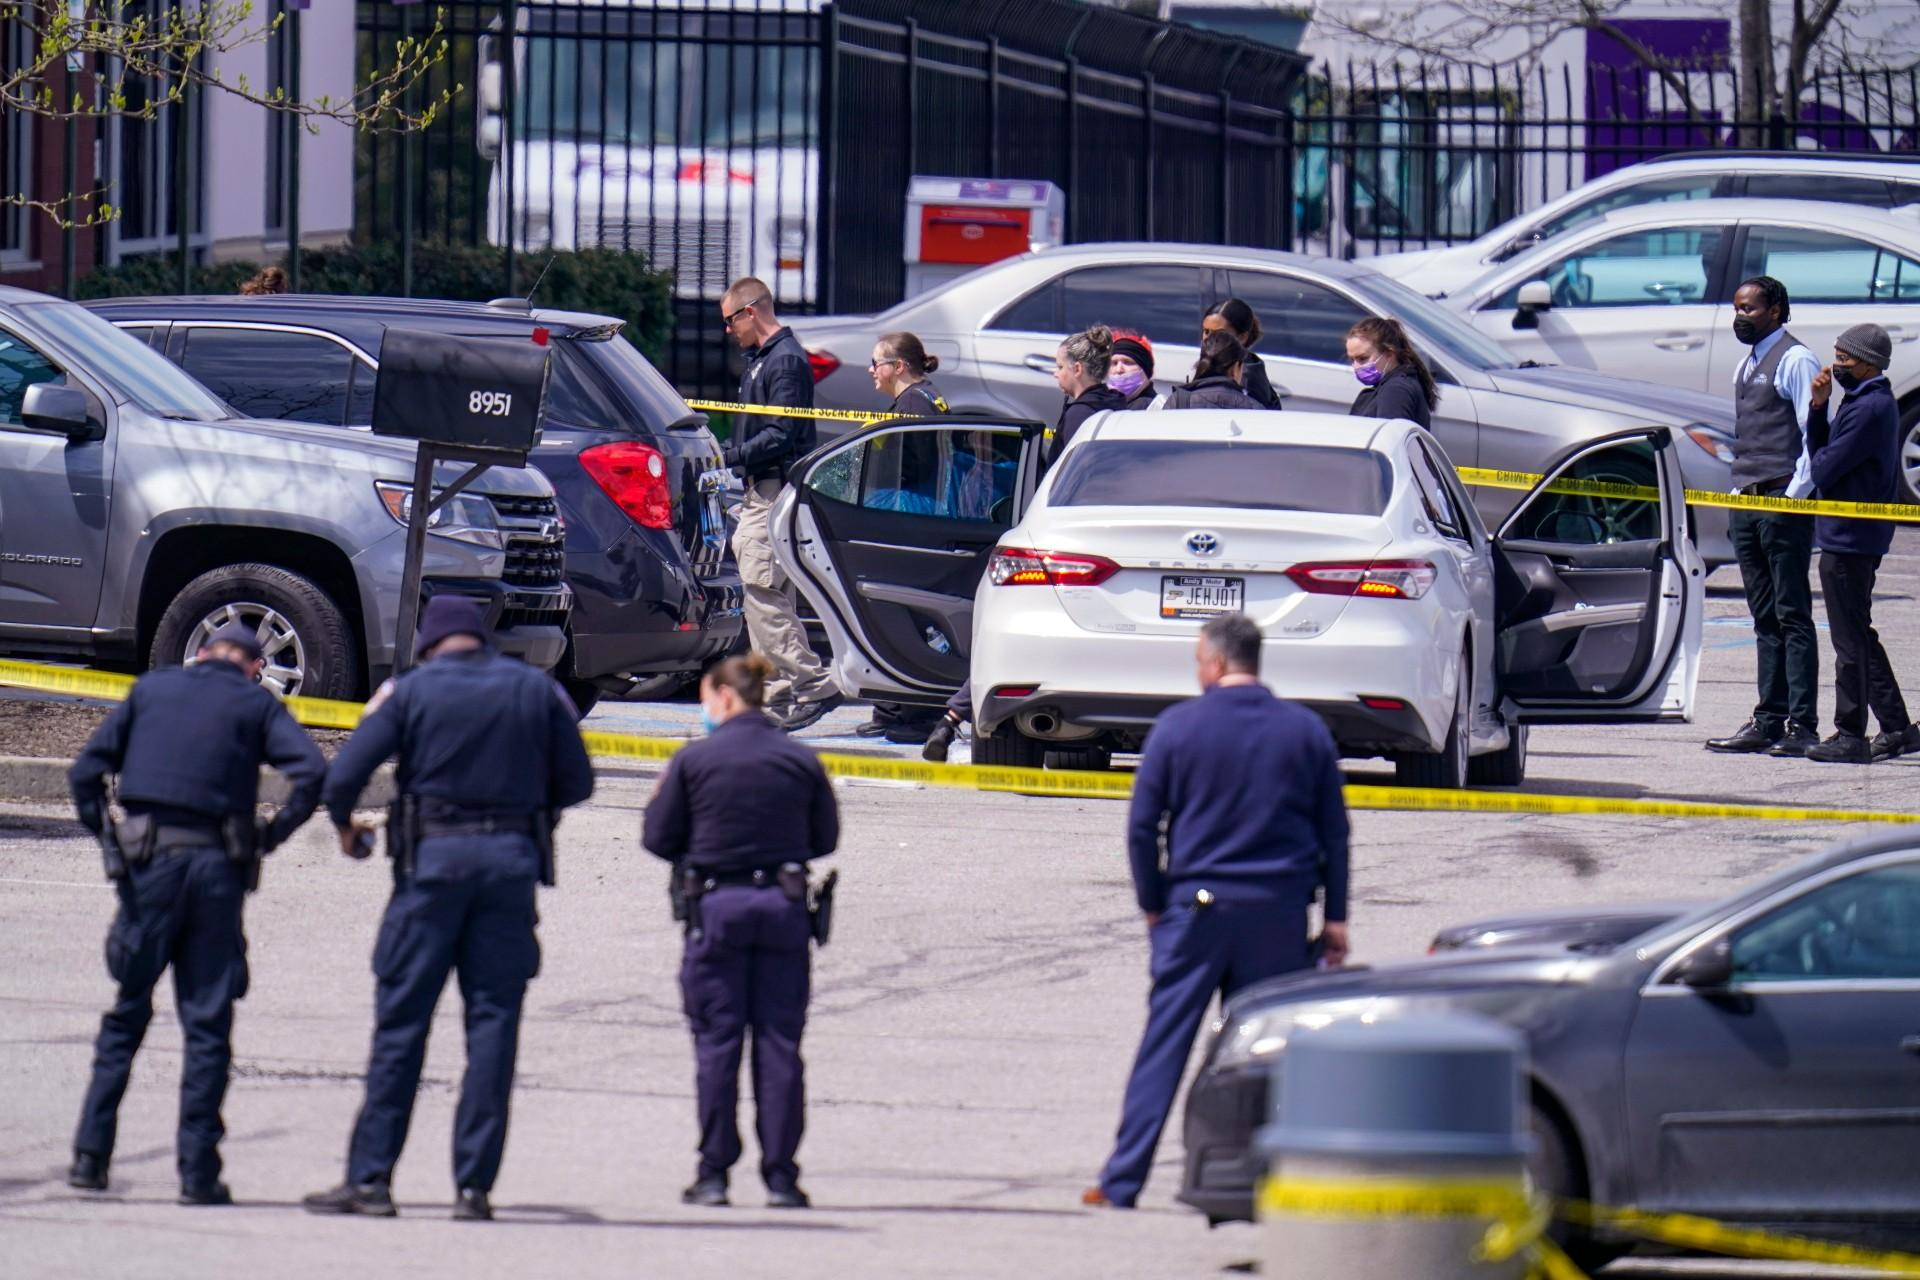 Law enforcement confer at the scene, Friday, April 16, 2021, in Indianapolis, where multiple people were shot at a FedEx Ground facility near the Indianapolis airport. (AP Photo / Michael Conroy)